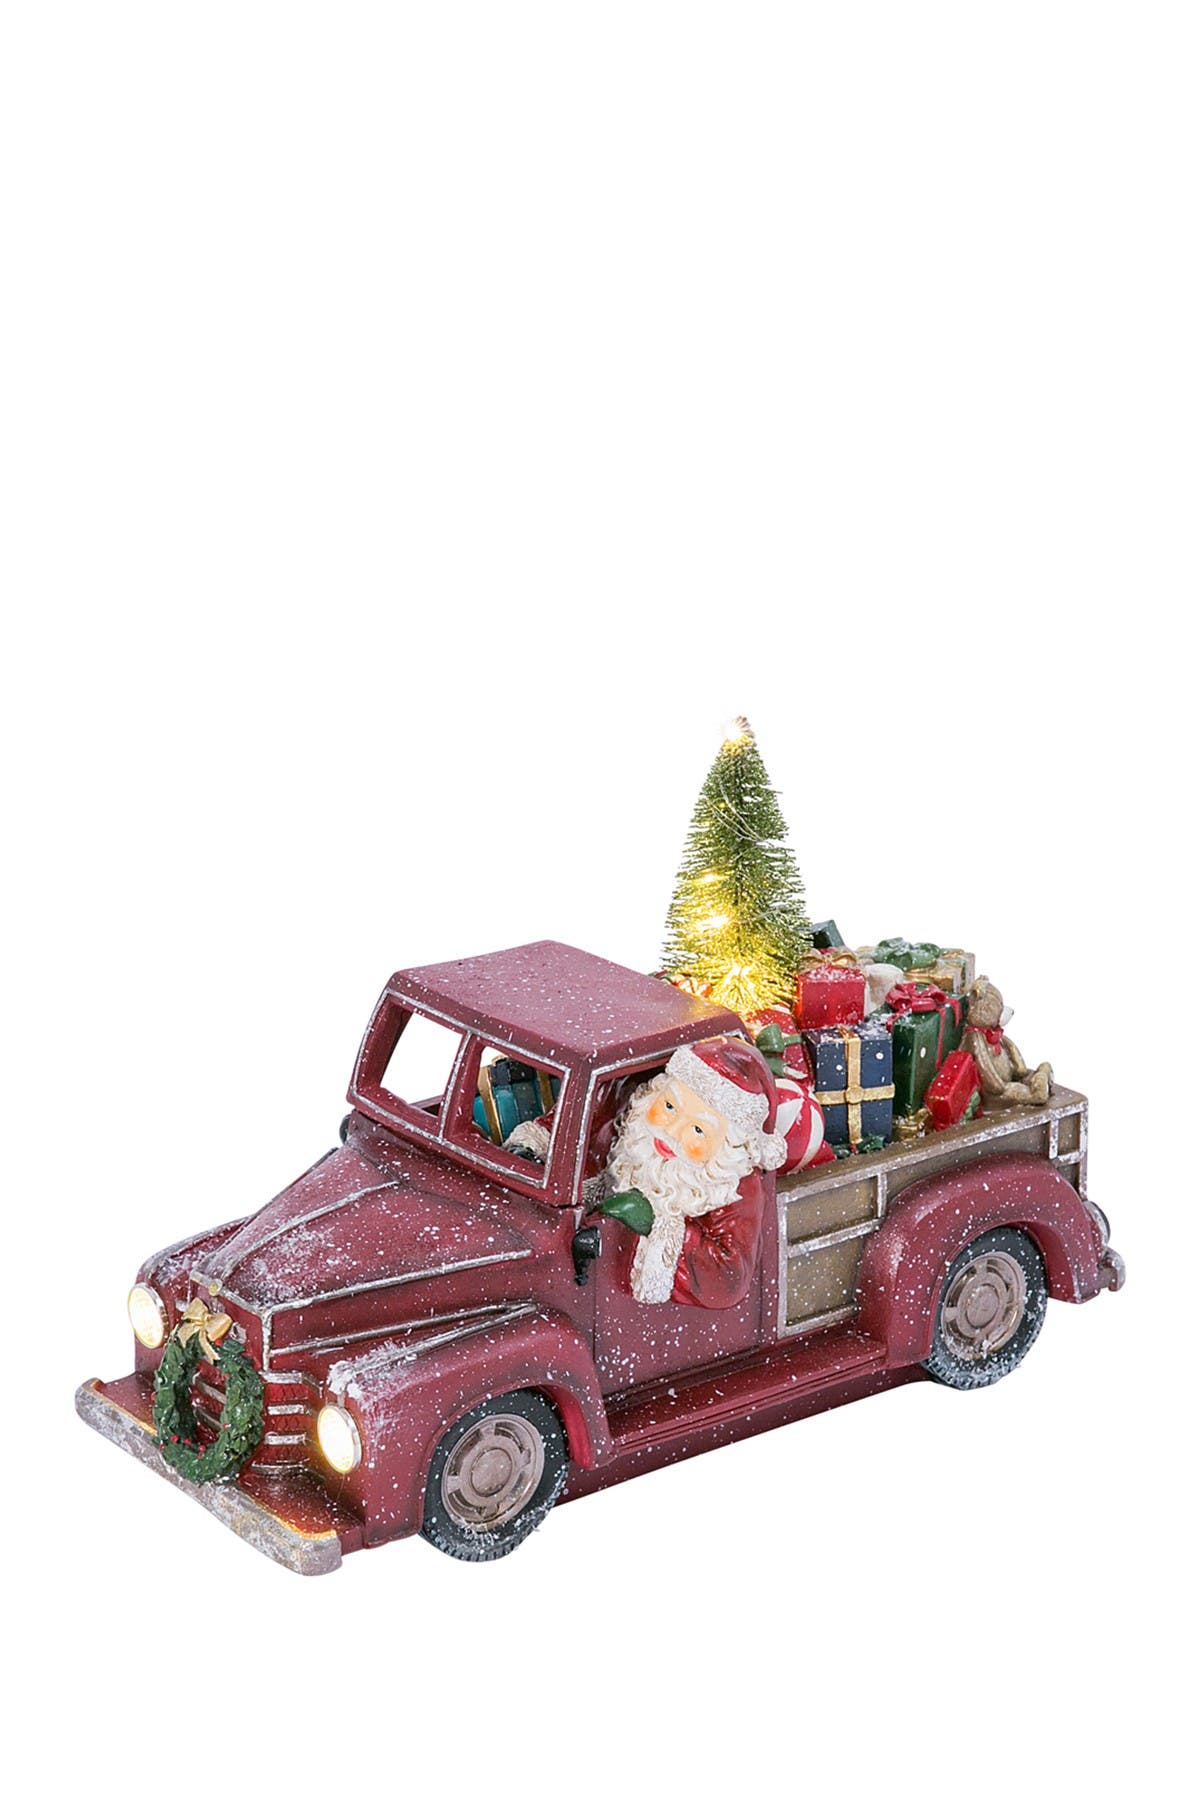 """Image of Gerson Company 16.45""""L Santa & Presents Lighted Holiday Truck"""